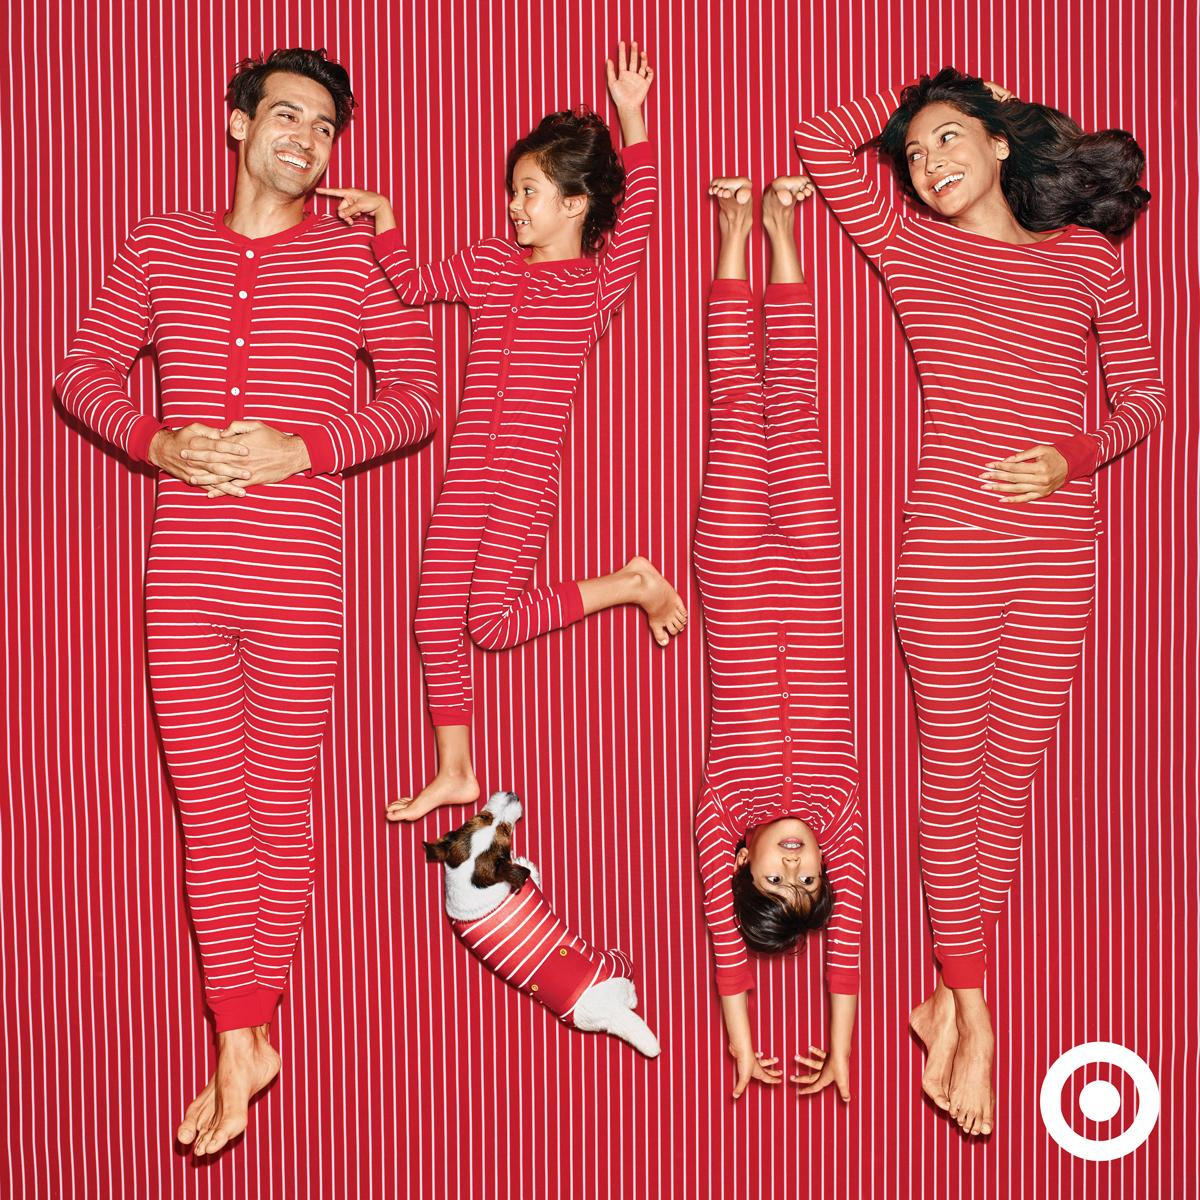 target family slumber parties on christmaseve are a must pictwittercomwqfpcn6xgw kuhh_lairre not that family - How Late Is Target Open On Christmas Eve